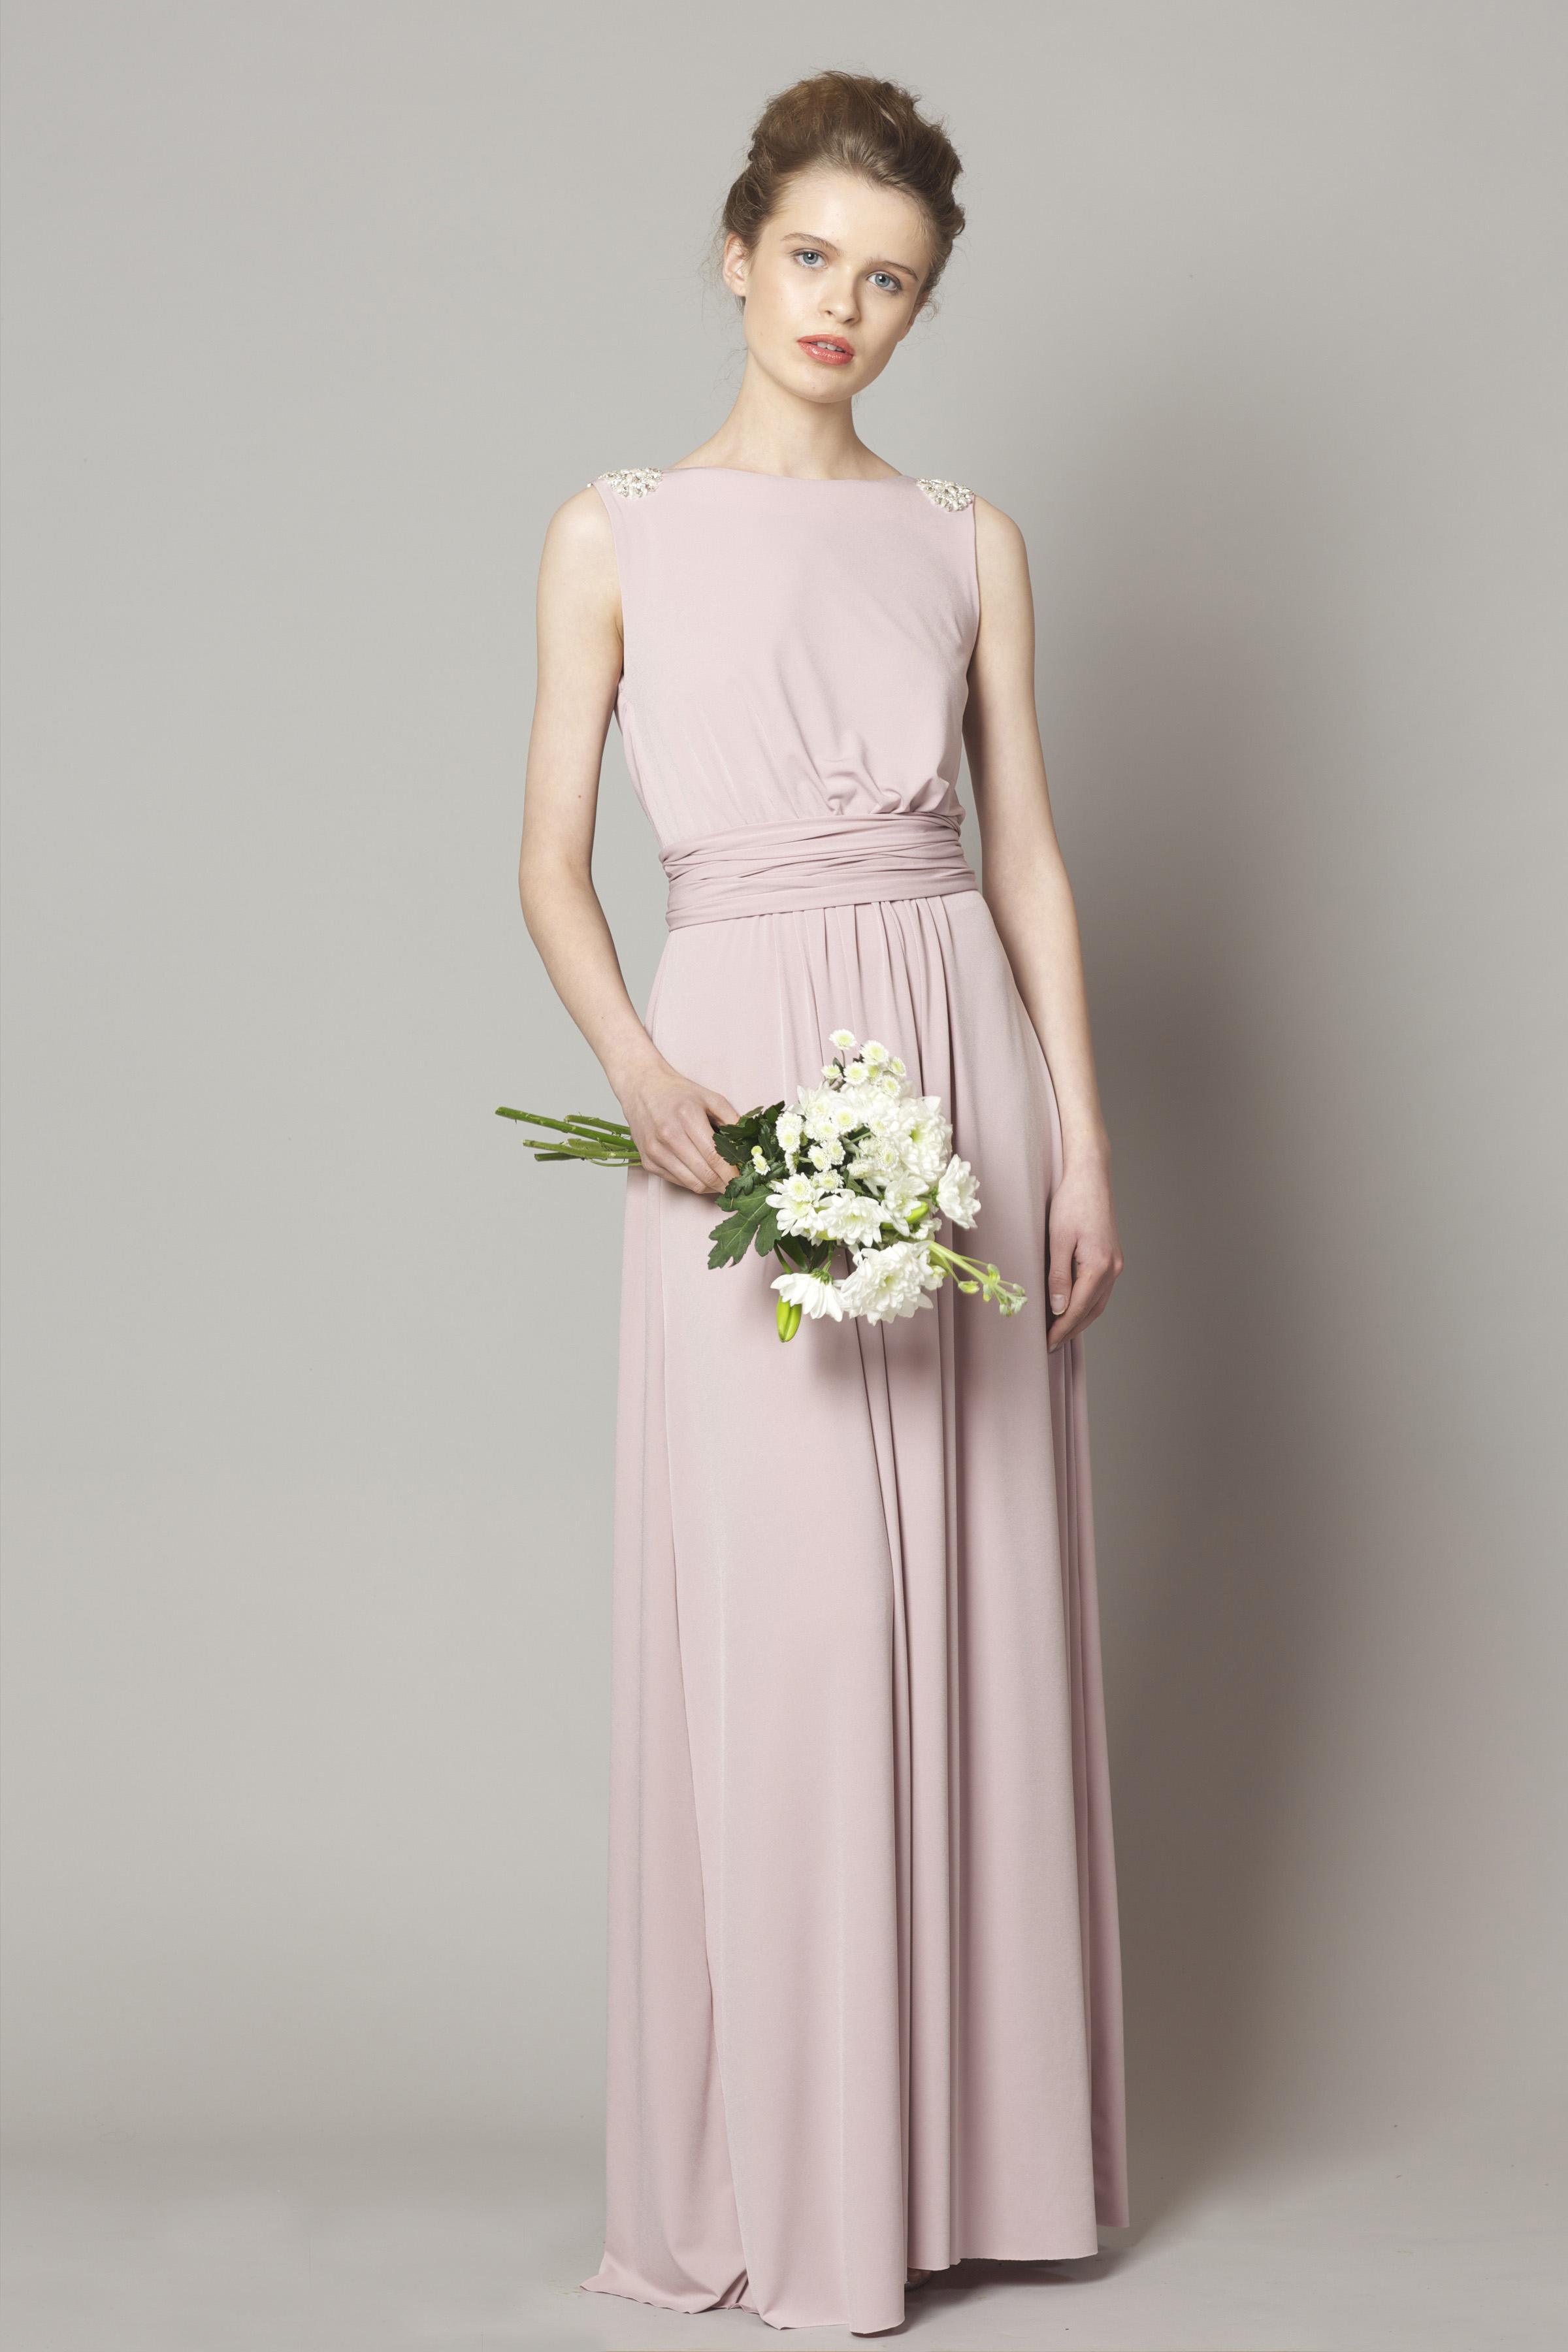 Nude pink bridesmaid dresses choice image braidsmaid dress index of wp contentuploads201512 nude pink bridesmaid dresses from dresscodeg ombrellifo choice image ombrellifo Image collections